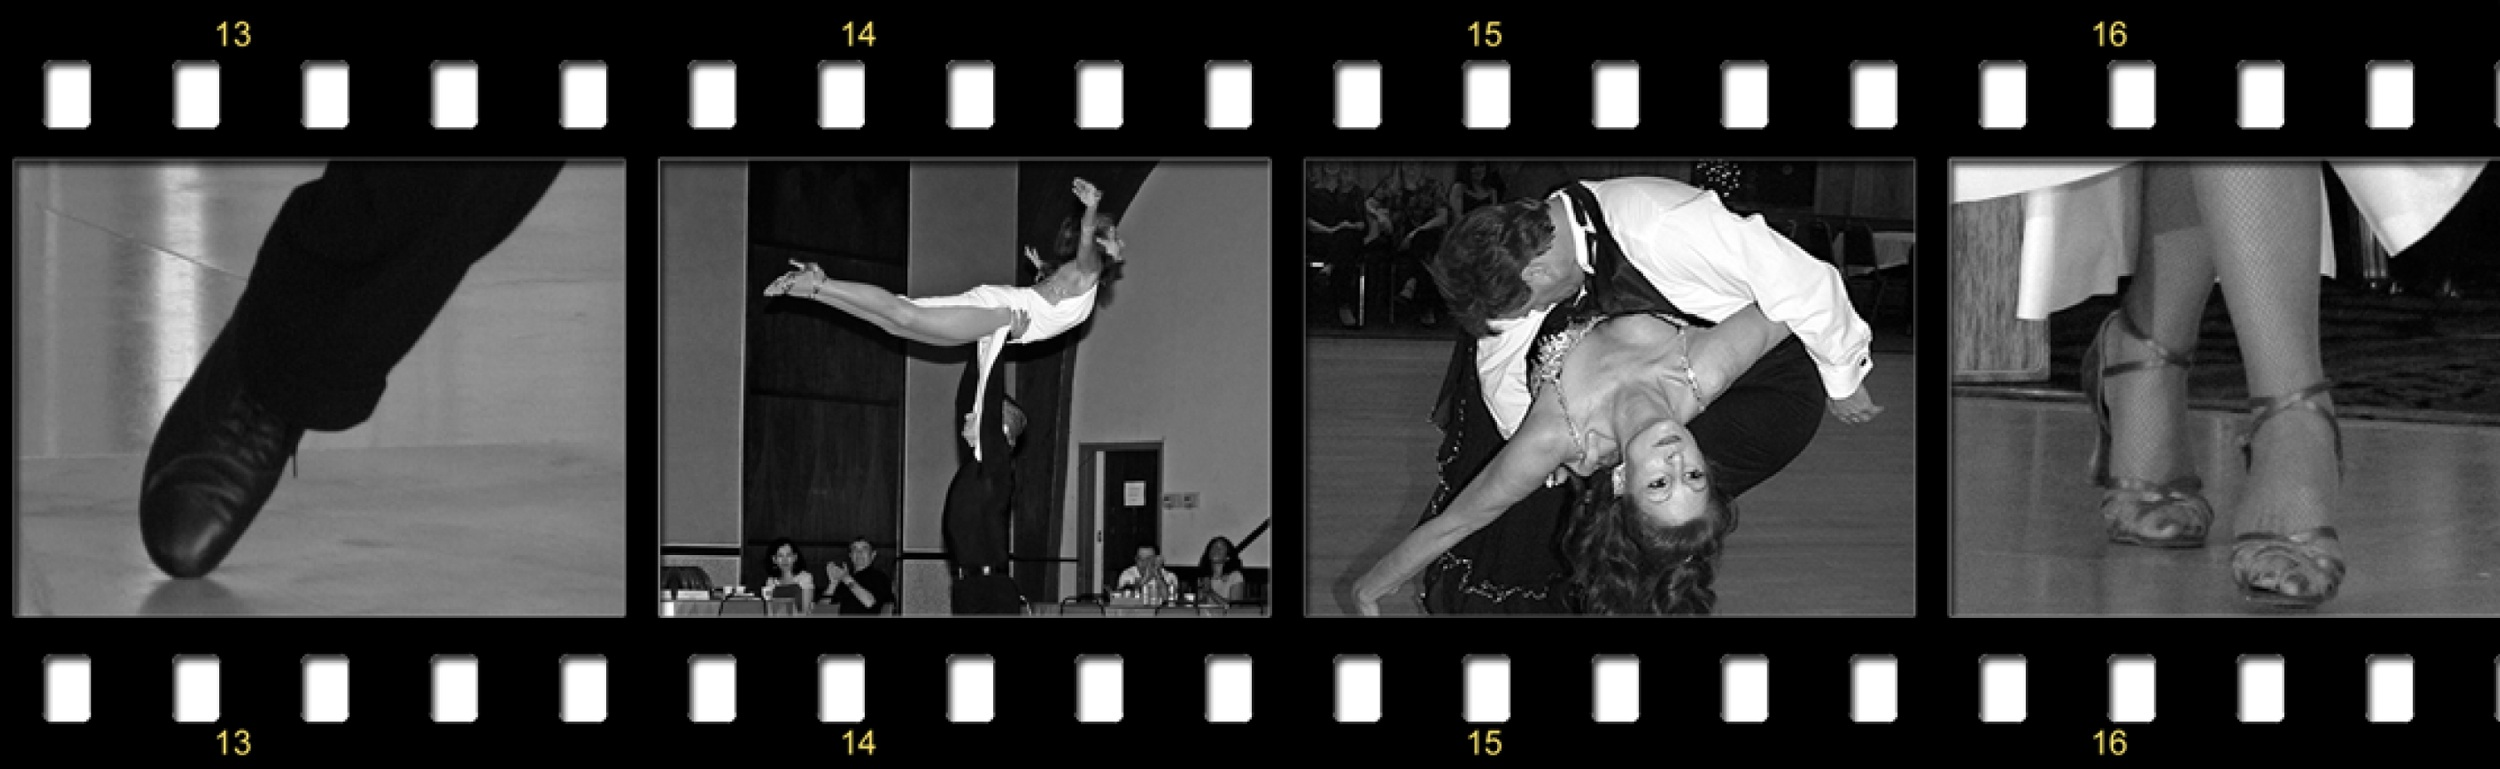 Reviews & Events - Exciting Dance Show - Tango, Salsa, Lifts